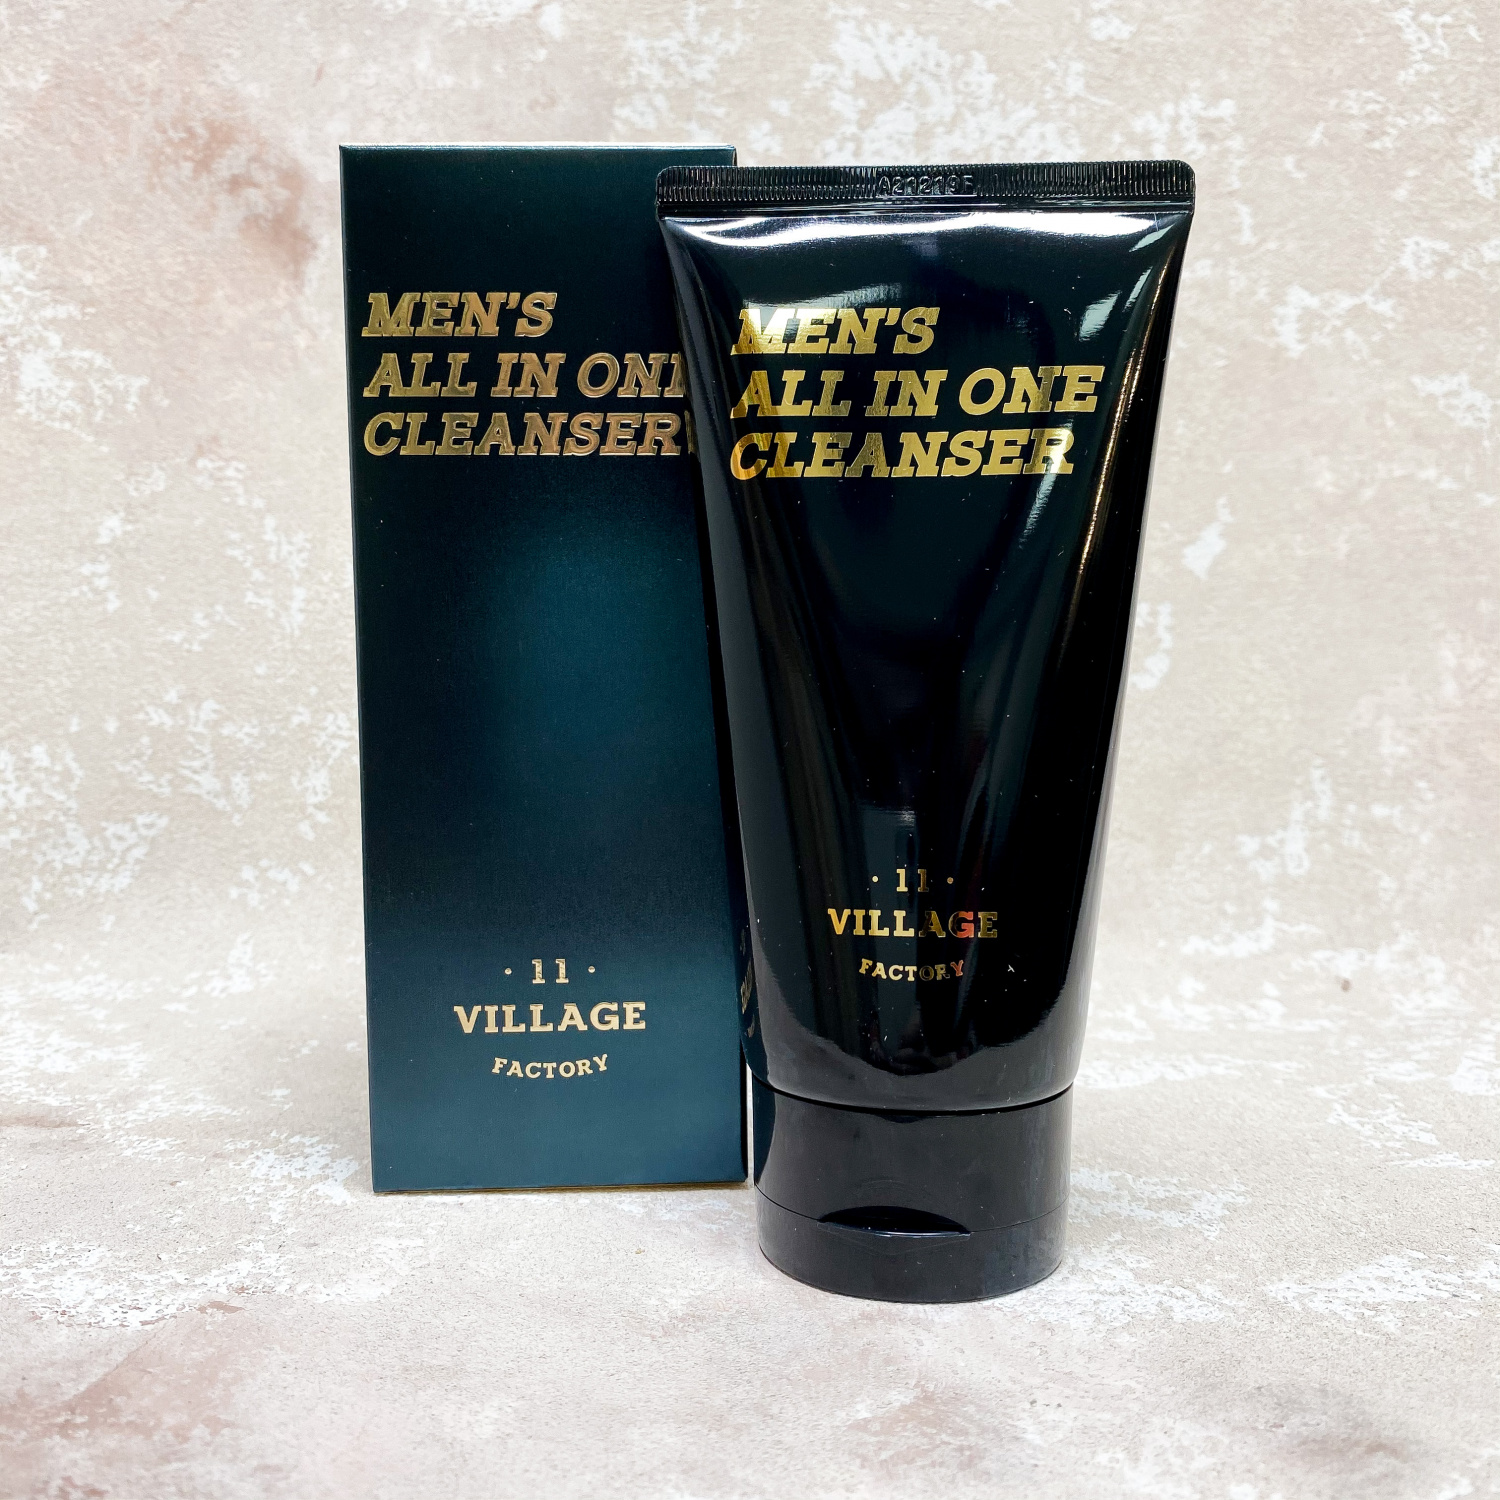 Village 11 Factory Men's All In One Cleanser